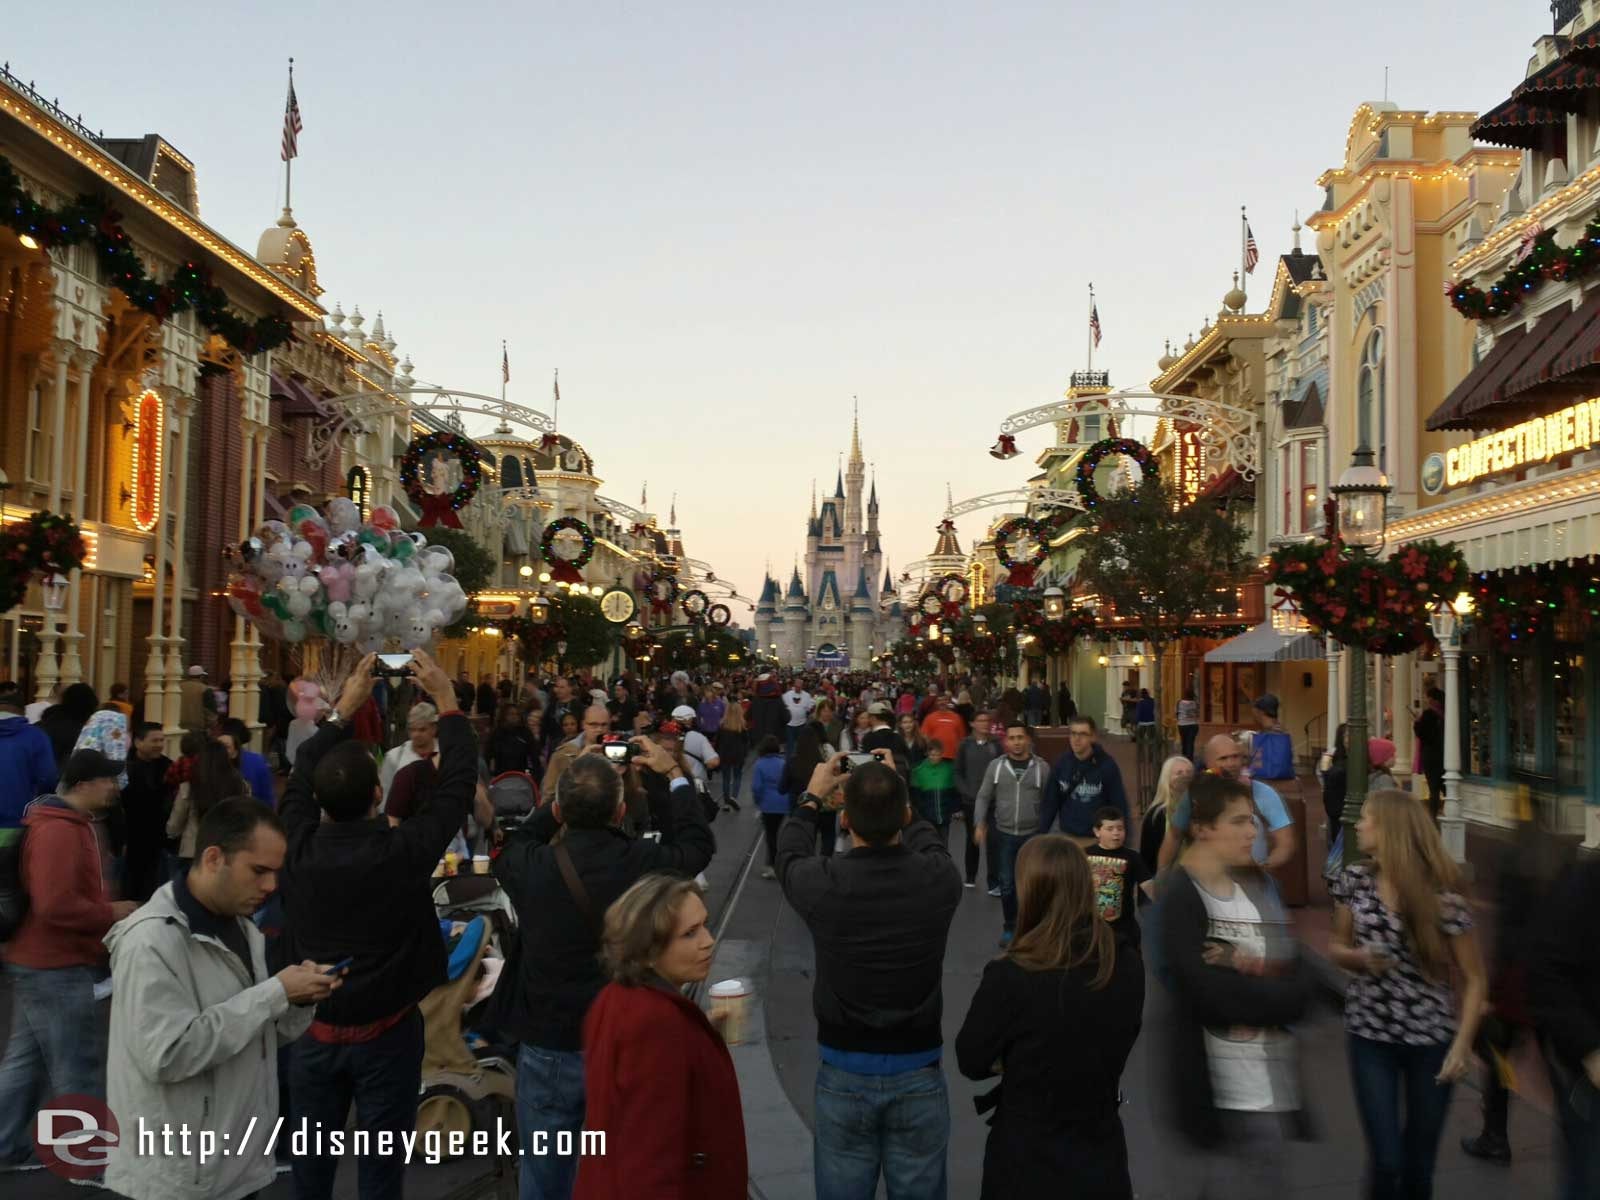 Main Street USA this evening #WDW Magic Kingdom